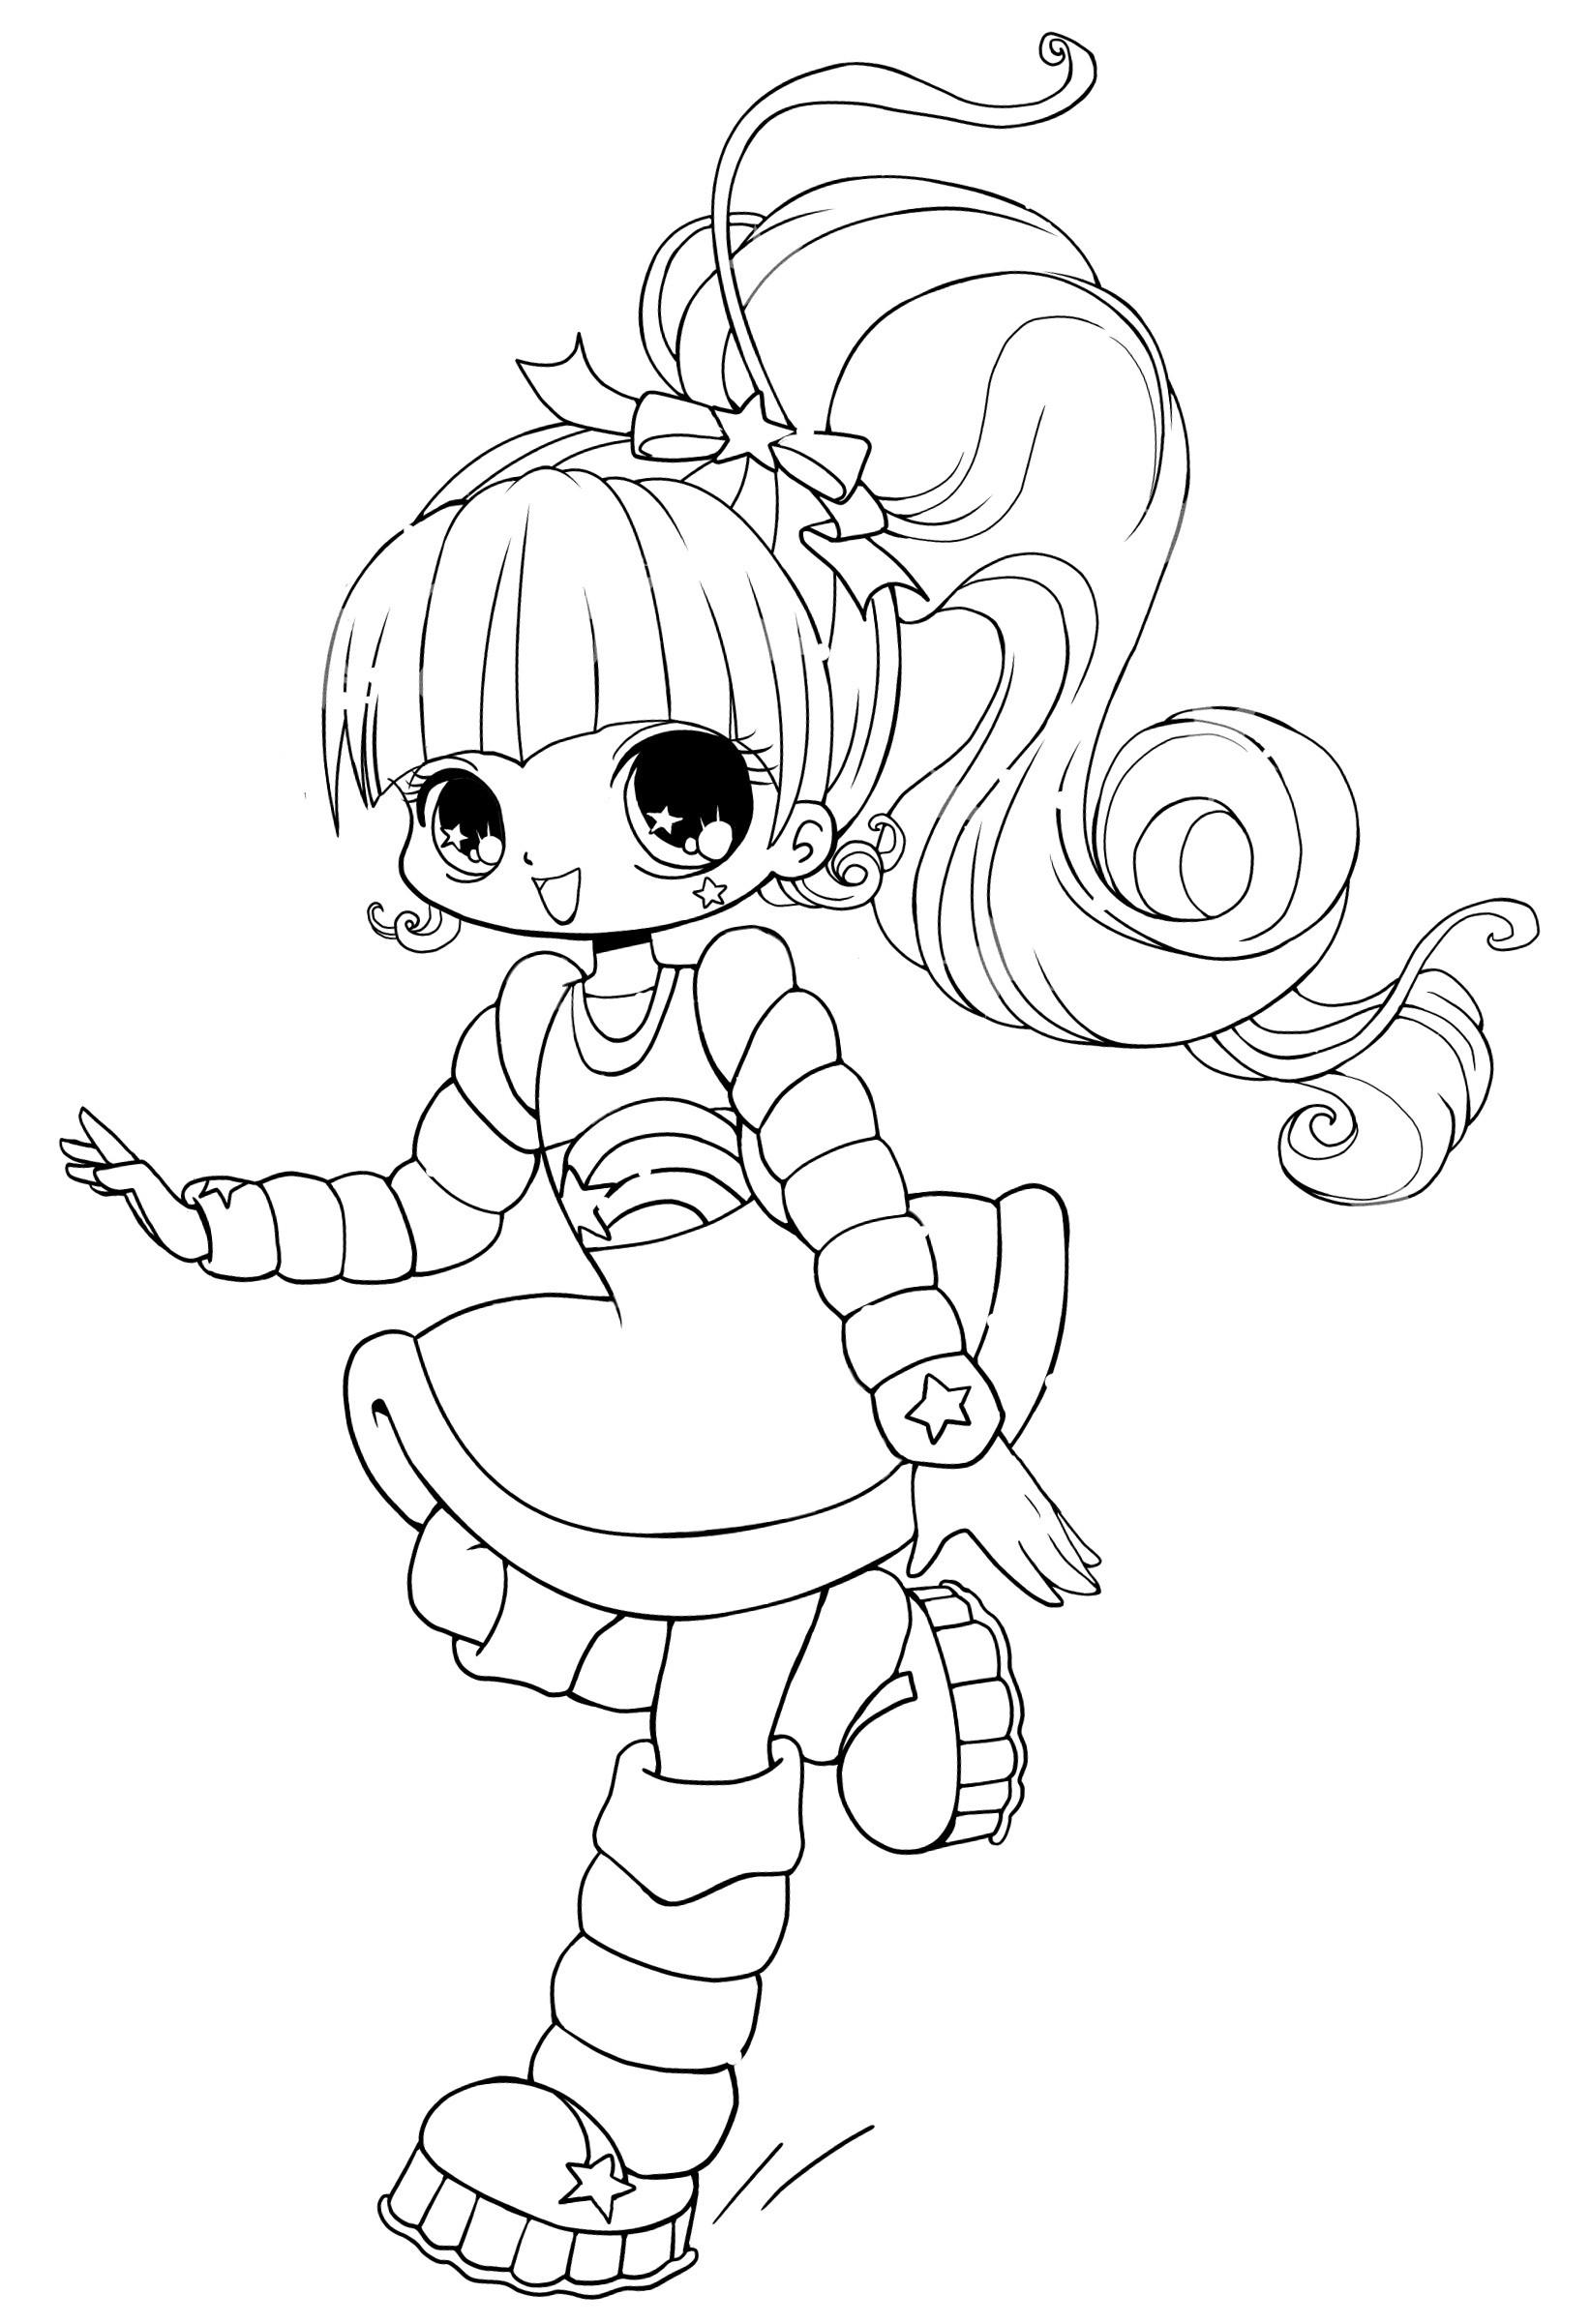 Cute Girl Coloring Sheets For Kids  Free Printable Chibi Coloring Pages For Kids